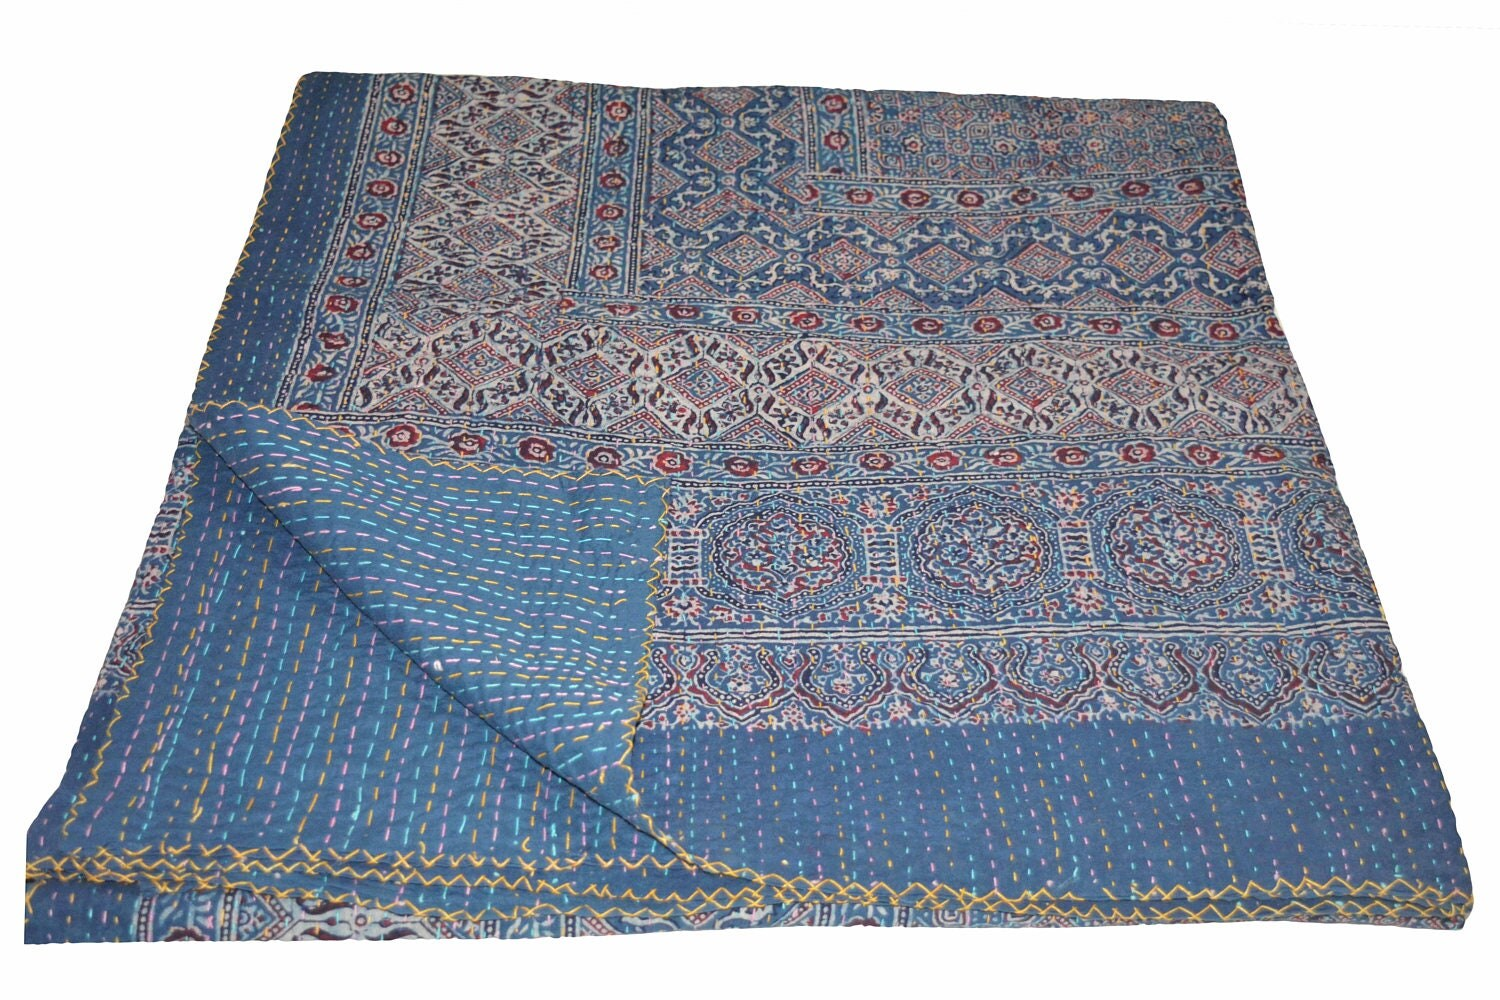 Crib size quilts for sale - Vintage Indian Kantha Quilt Handmade Ajrakh Hand Block Print 100 Cotton Bed Cover Bedspread Blanket Queen Size Twin Size King Size